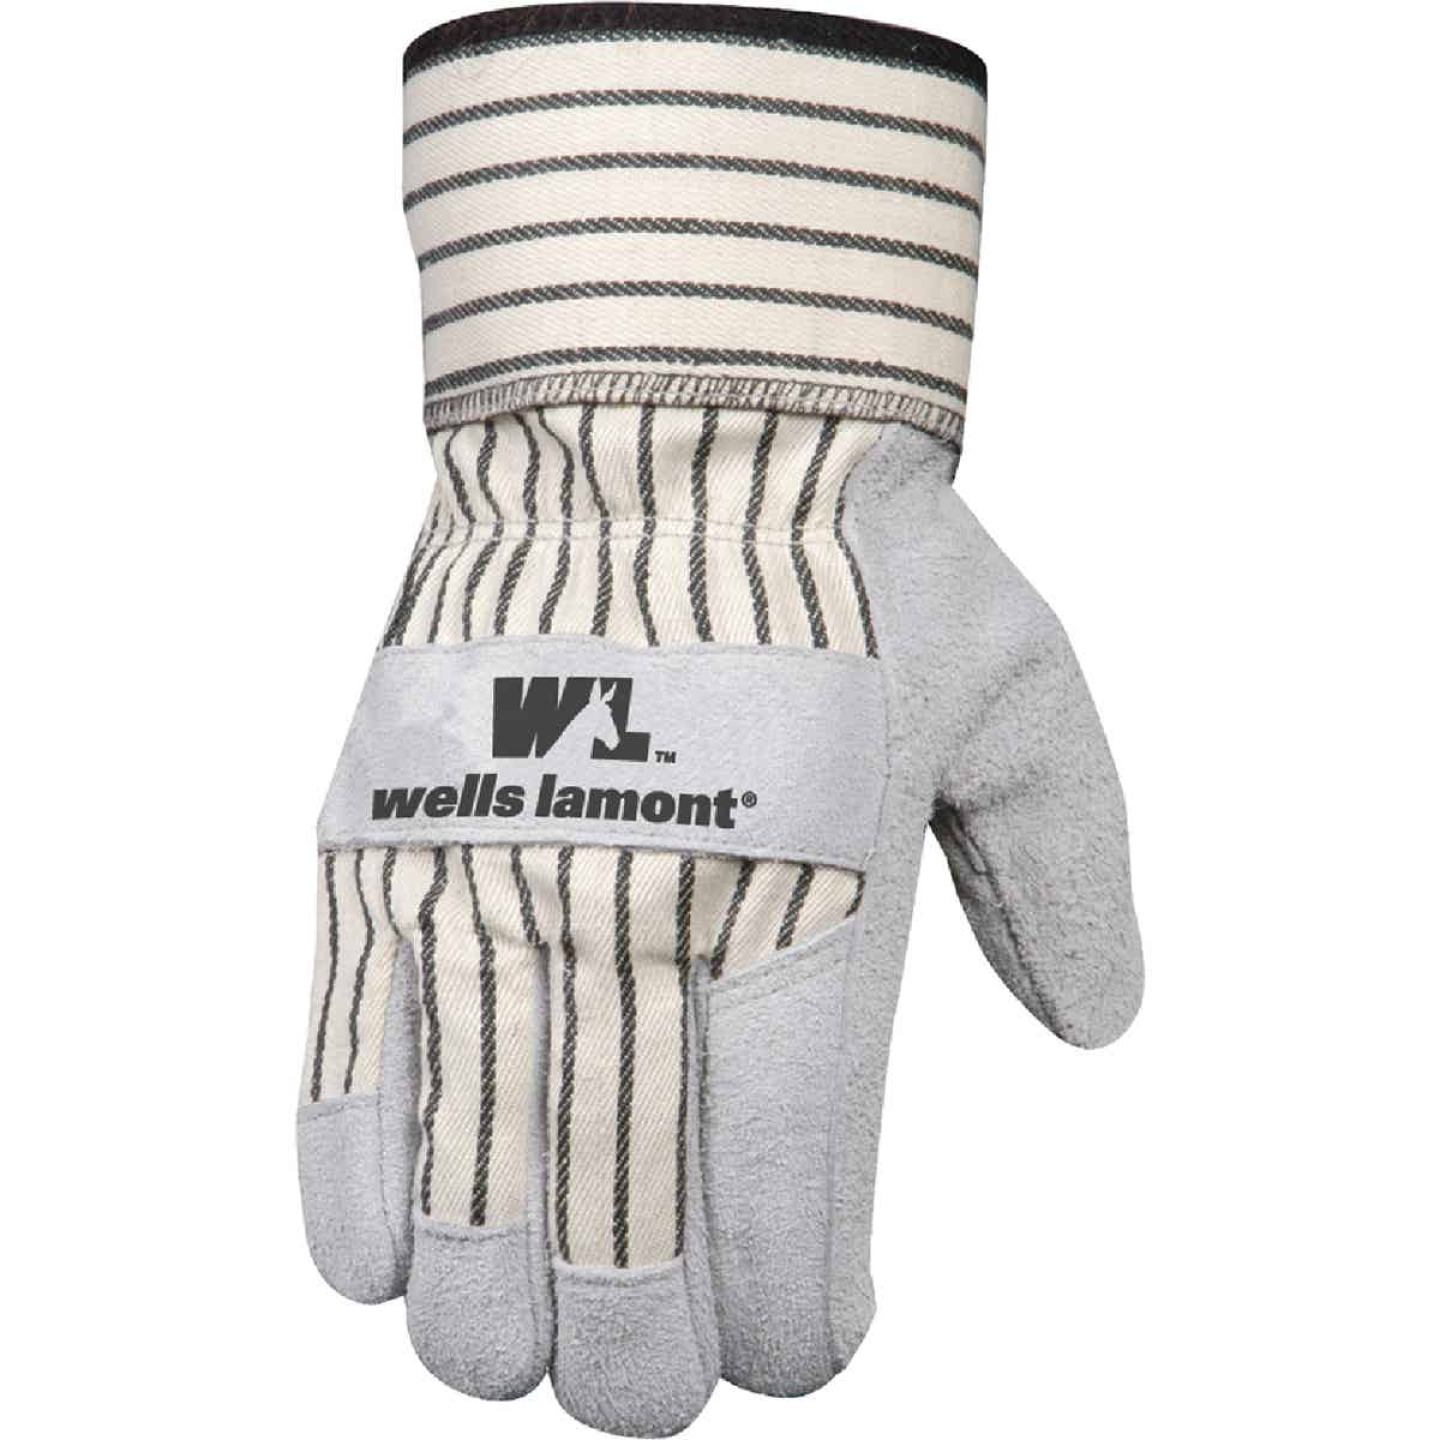 Wells Lamont Men's Large Suede Split Cowhide Leather Work Glove Image 1